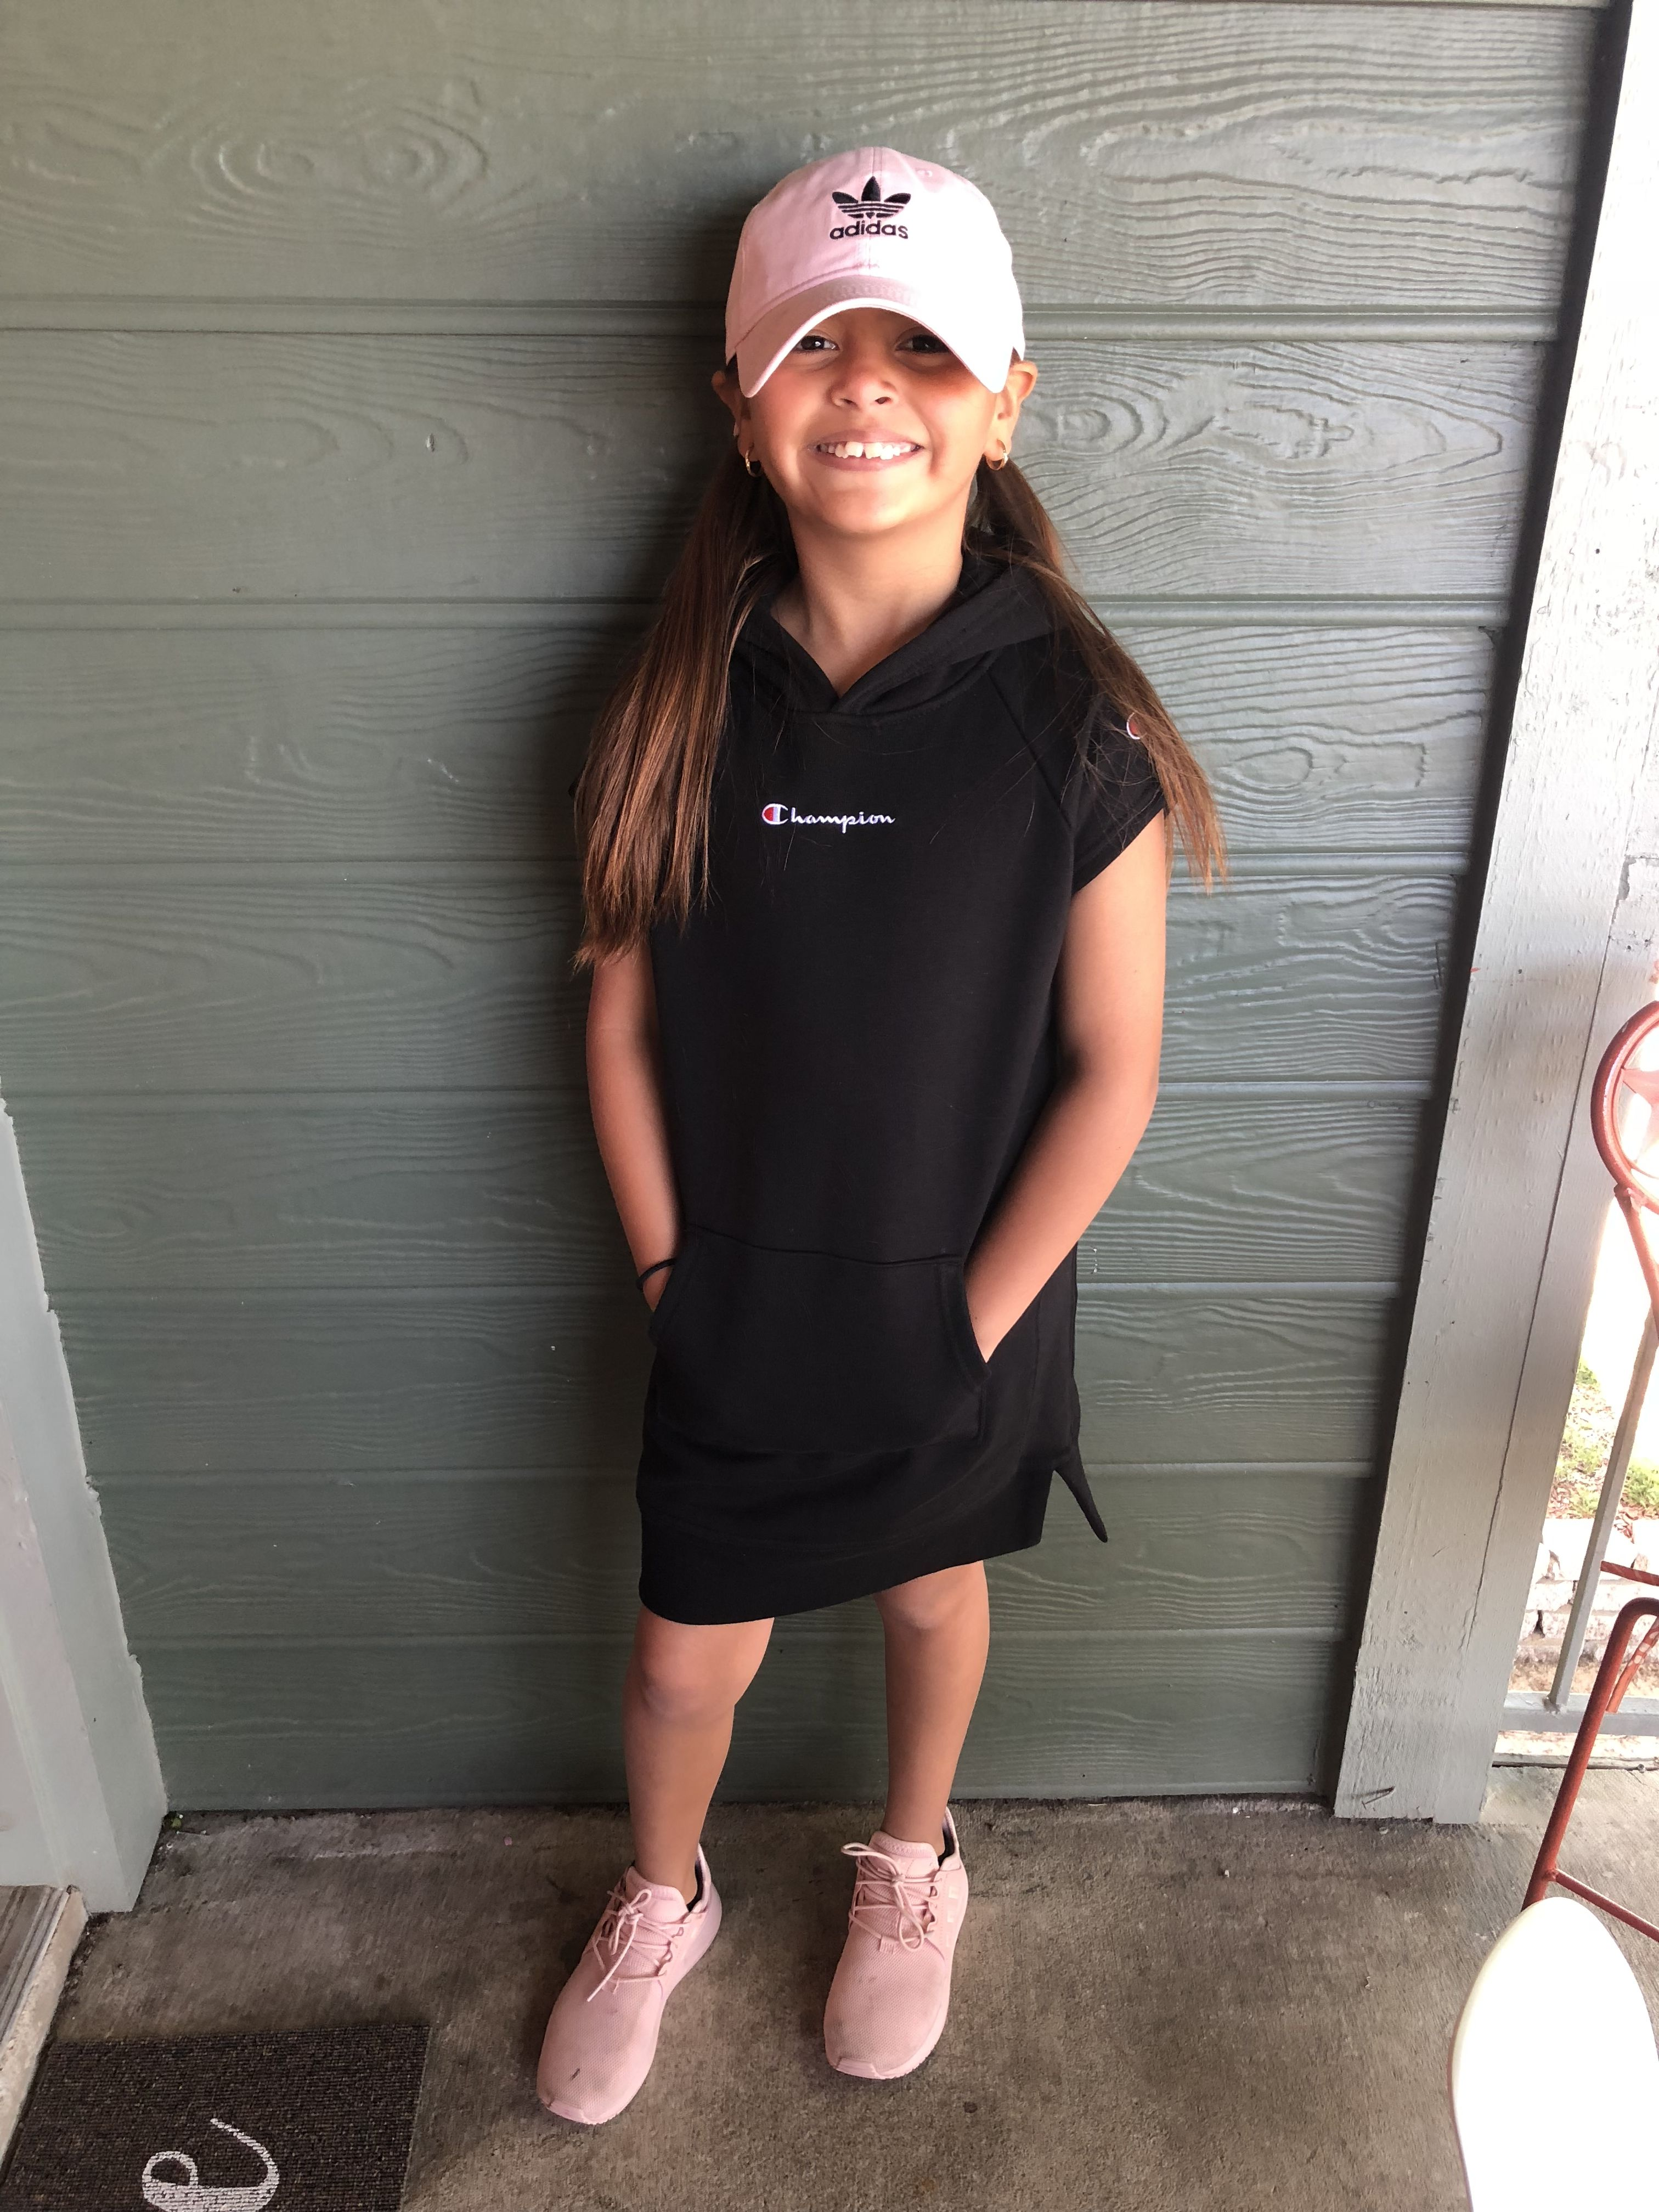 80a18208cd0 Black champion sweater dress from Kids Footlocker paired with a pink adidas  hat and shoes